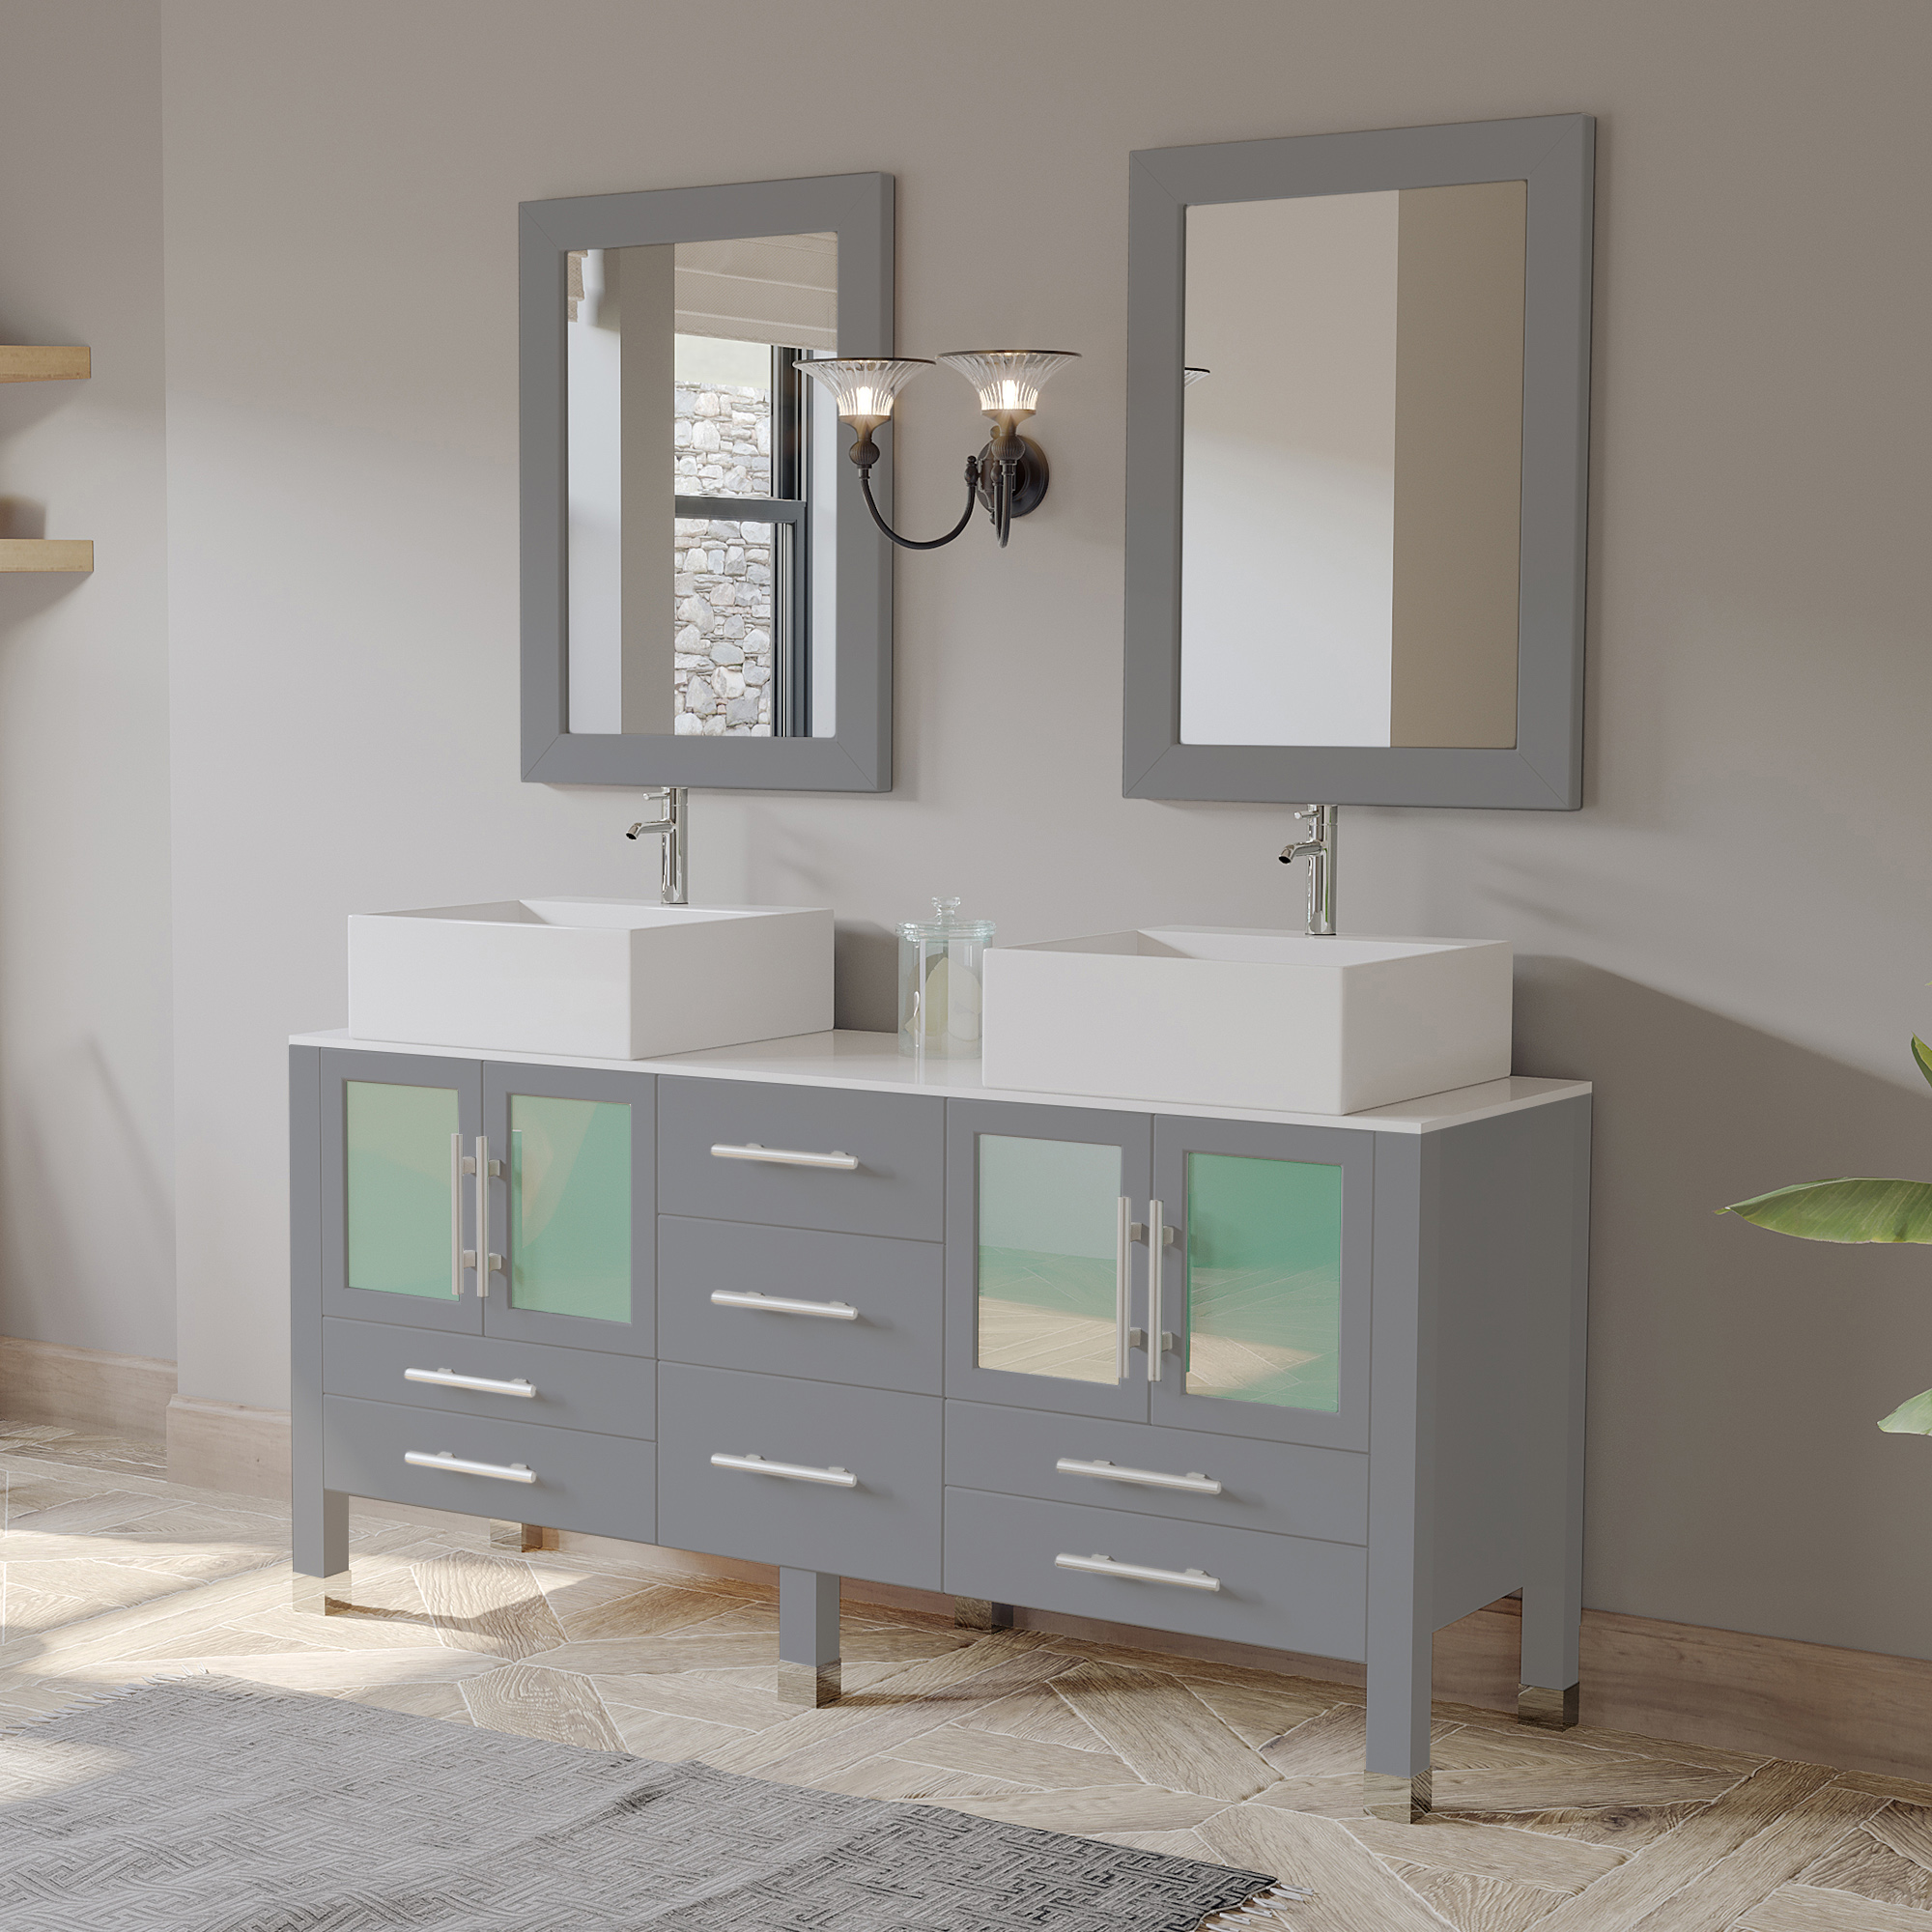 "63"" Double Sink Bathroom Vanity Set in Gray Cabinet Finish with Polished Chrome Plumbing"